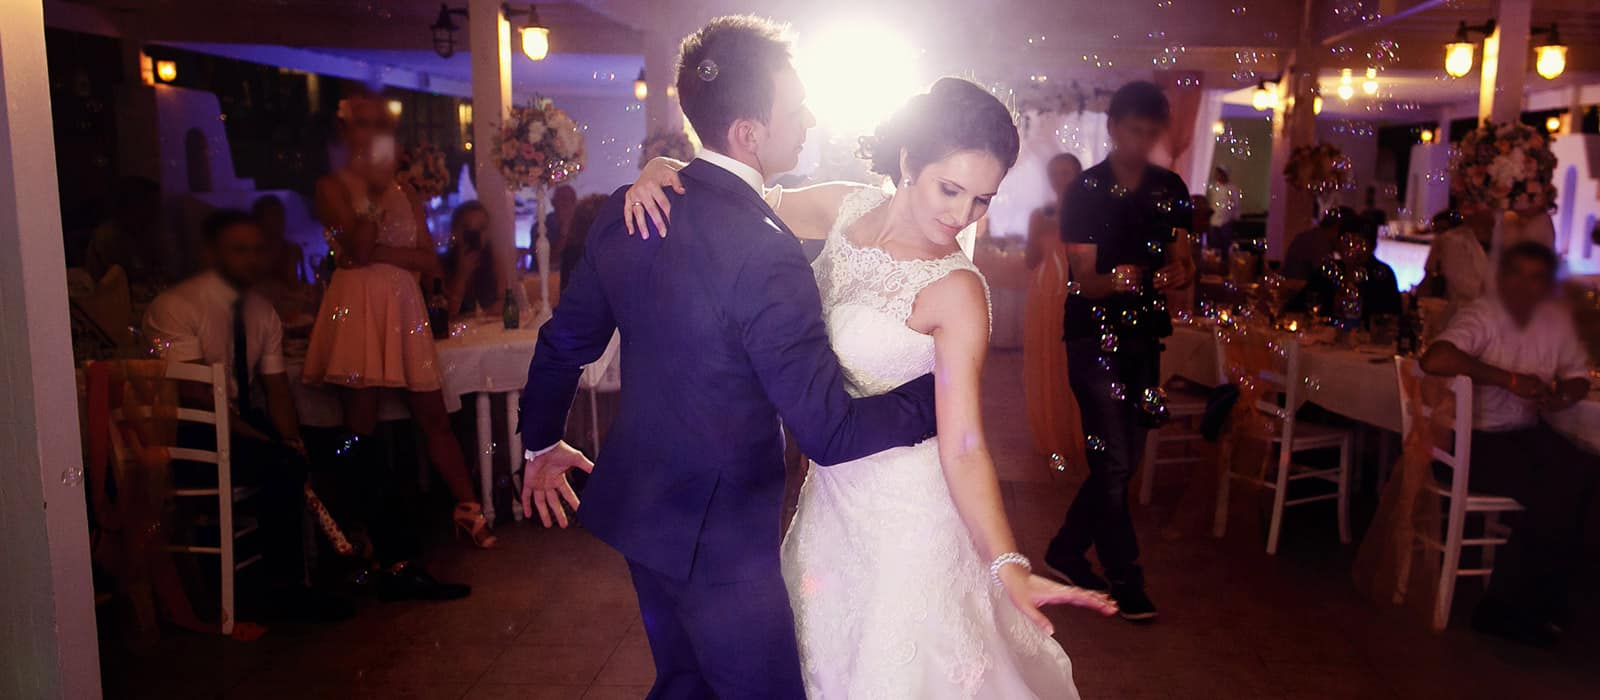 Bachata dancing first dance wedding